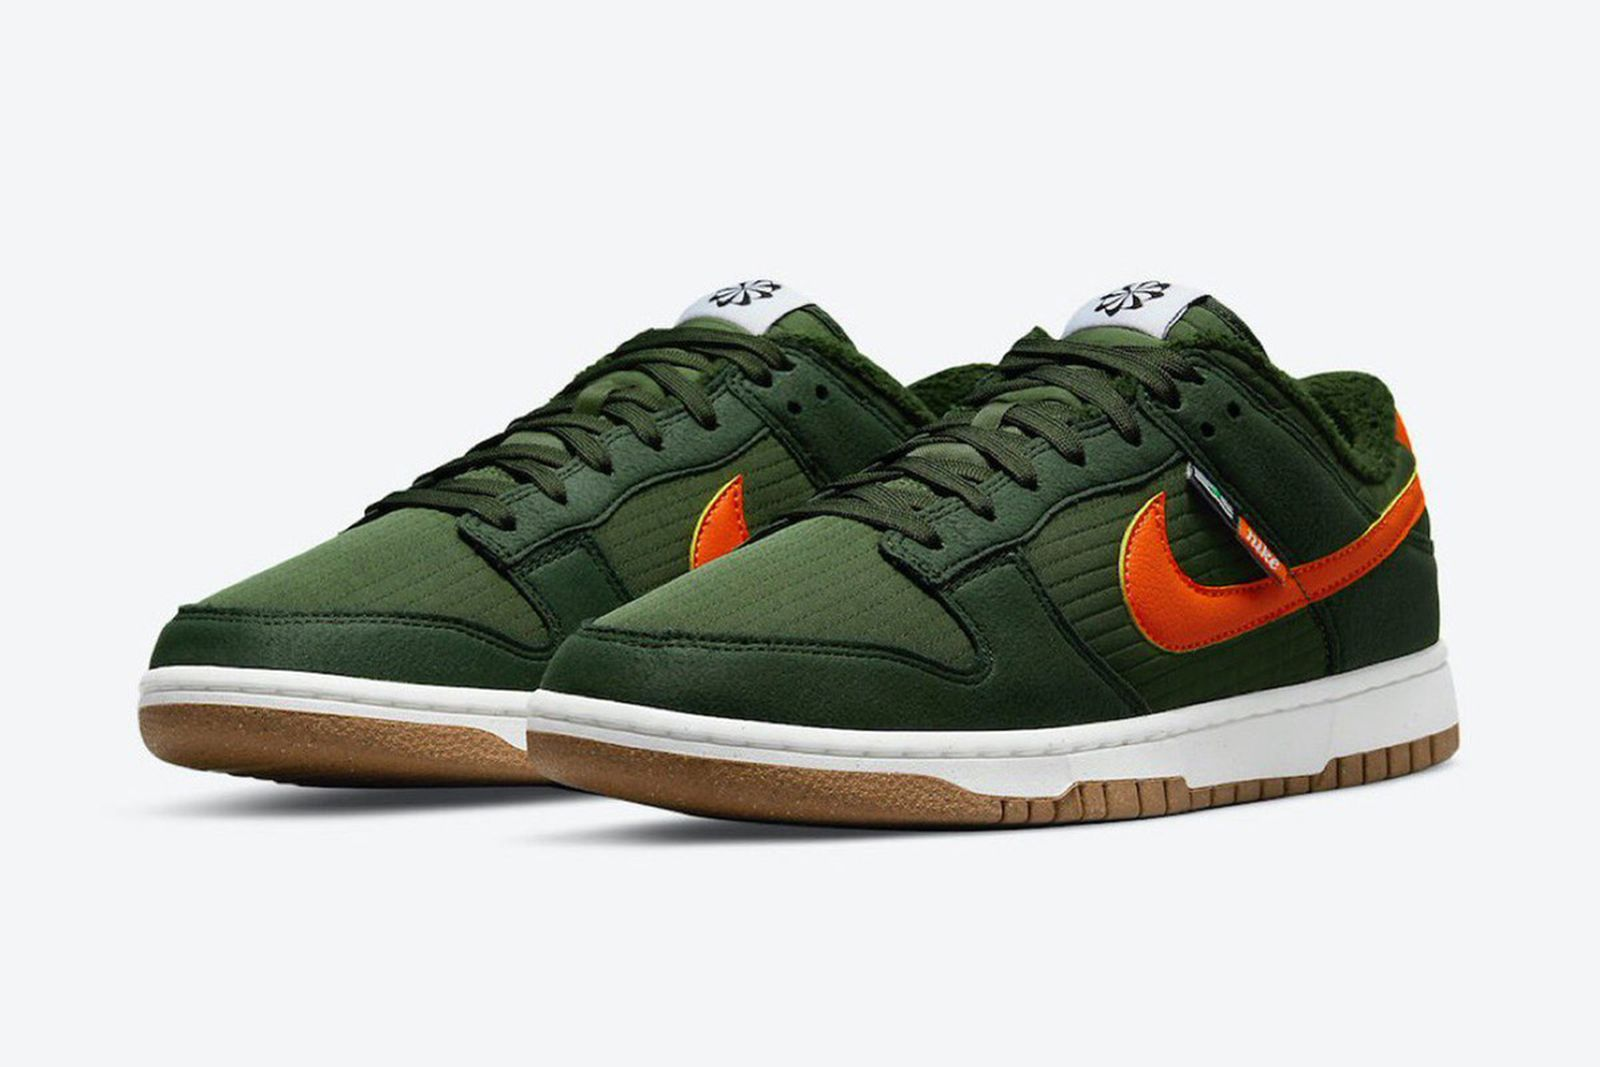 nike-dunk-low-upcoming-2021-releases-09